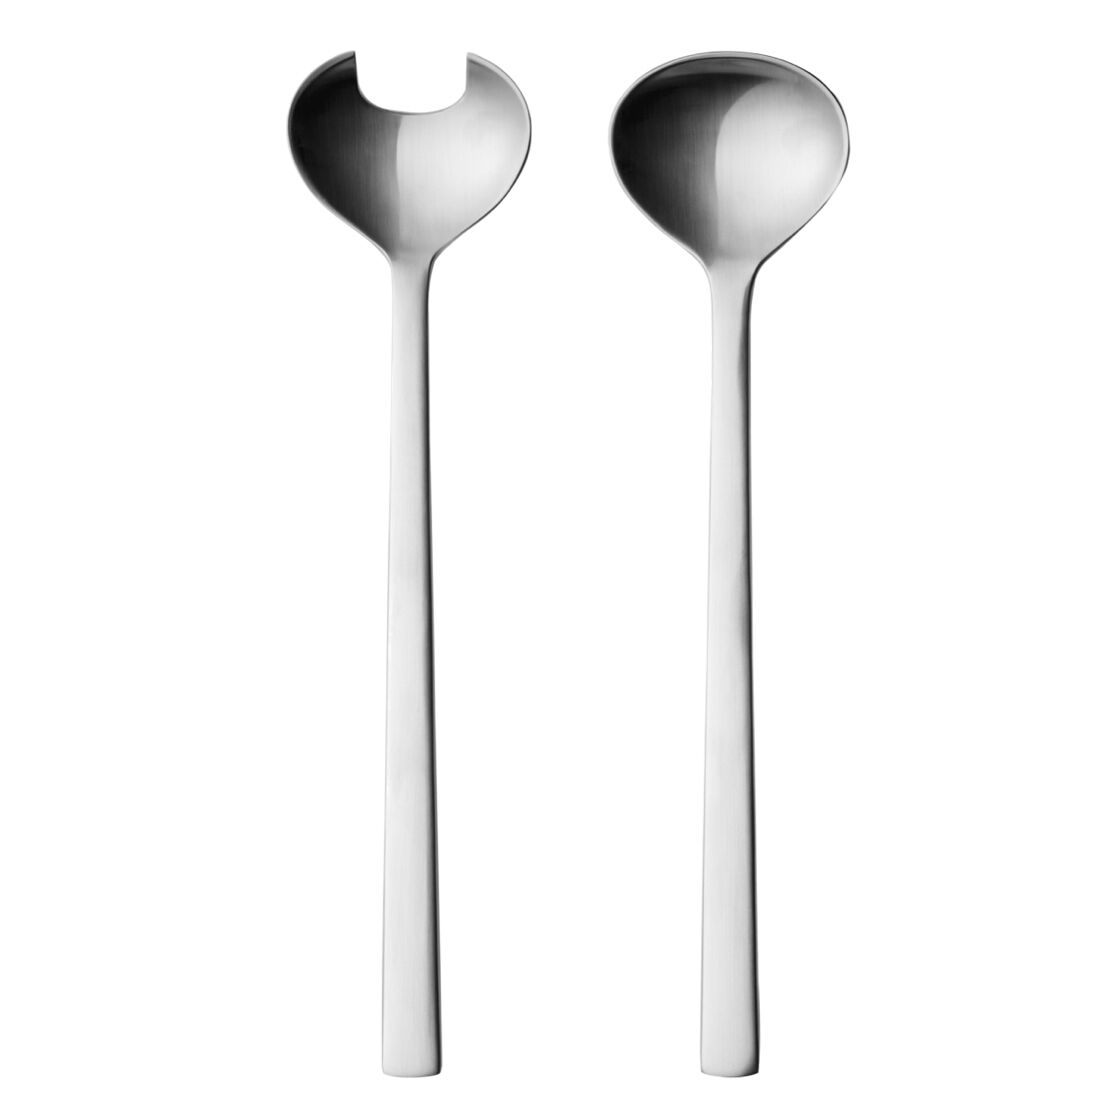 Georg Jensen. New York Cutlery - Salad Servers - - - Henning Koppel. 3e4611